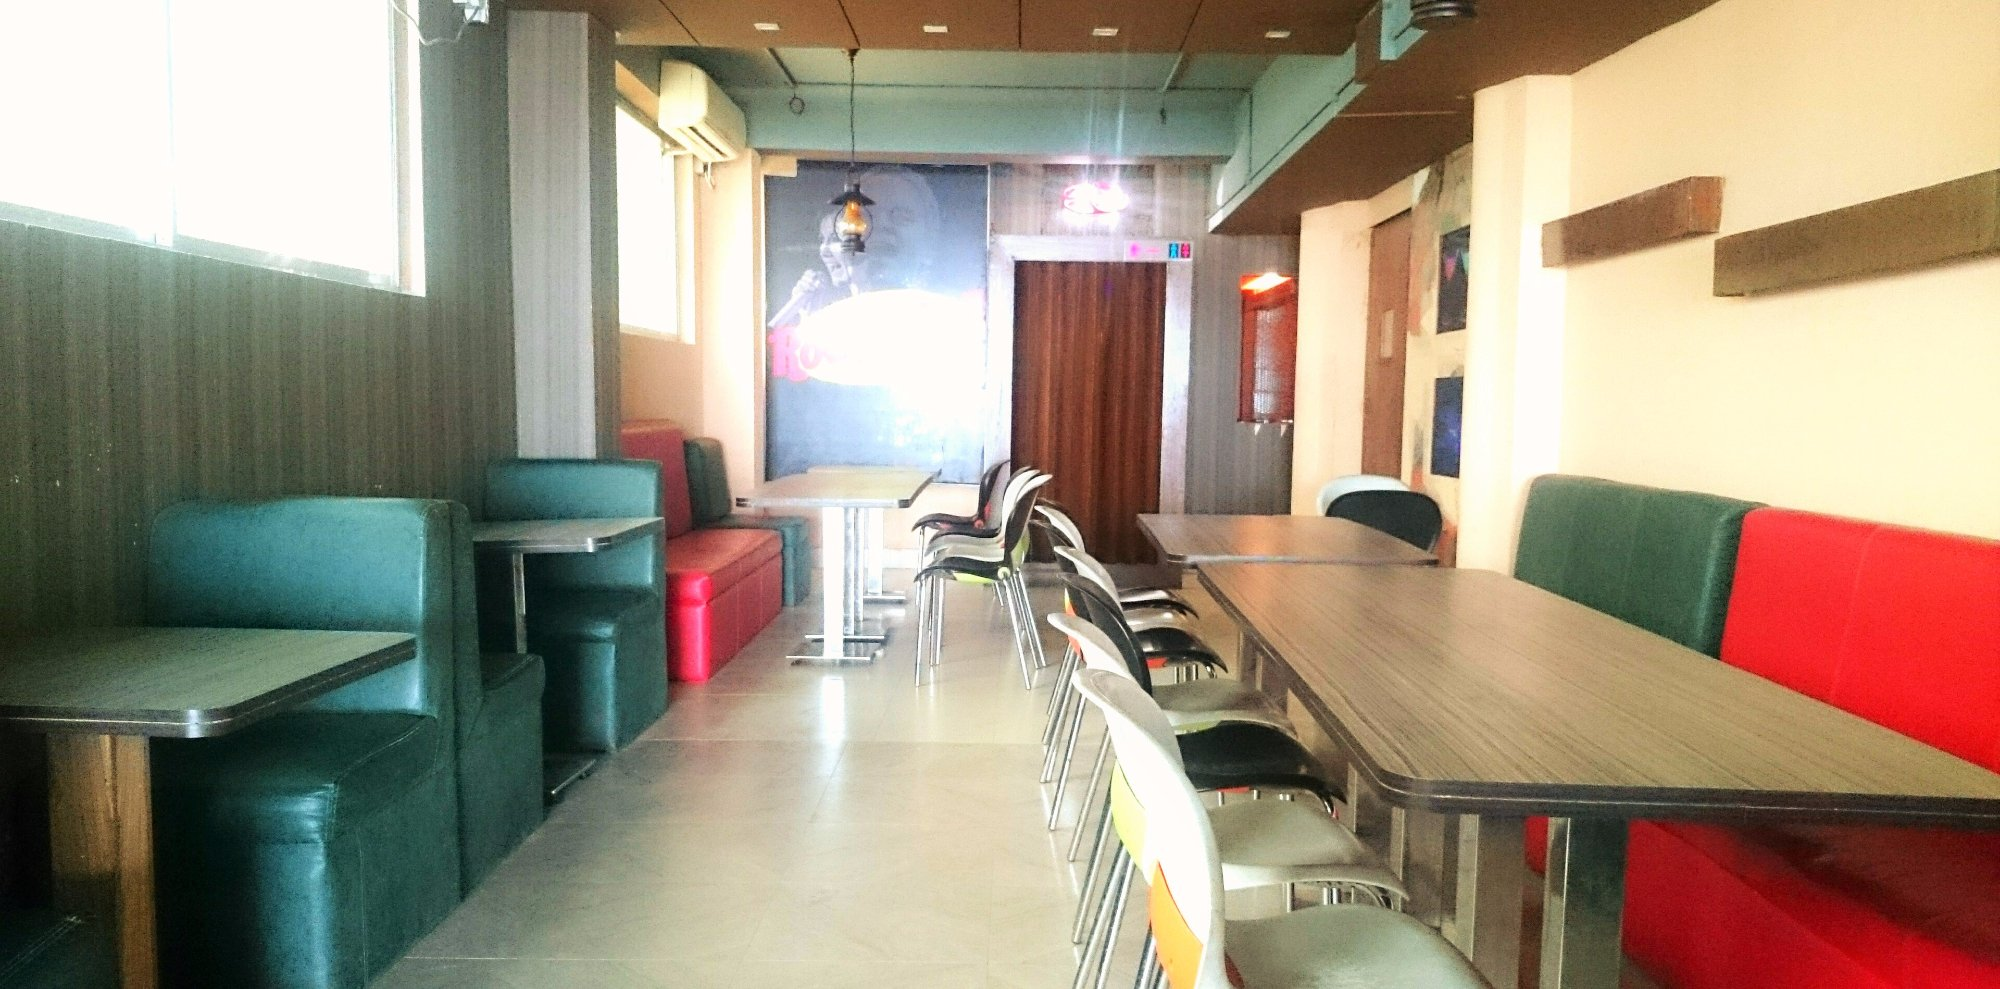 Rock N Roll Cafe Coxs Bazar Restaurant Reviews Phone Number